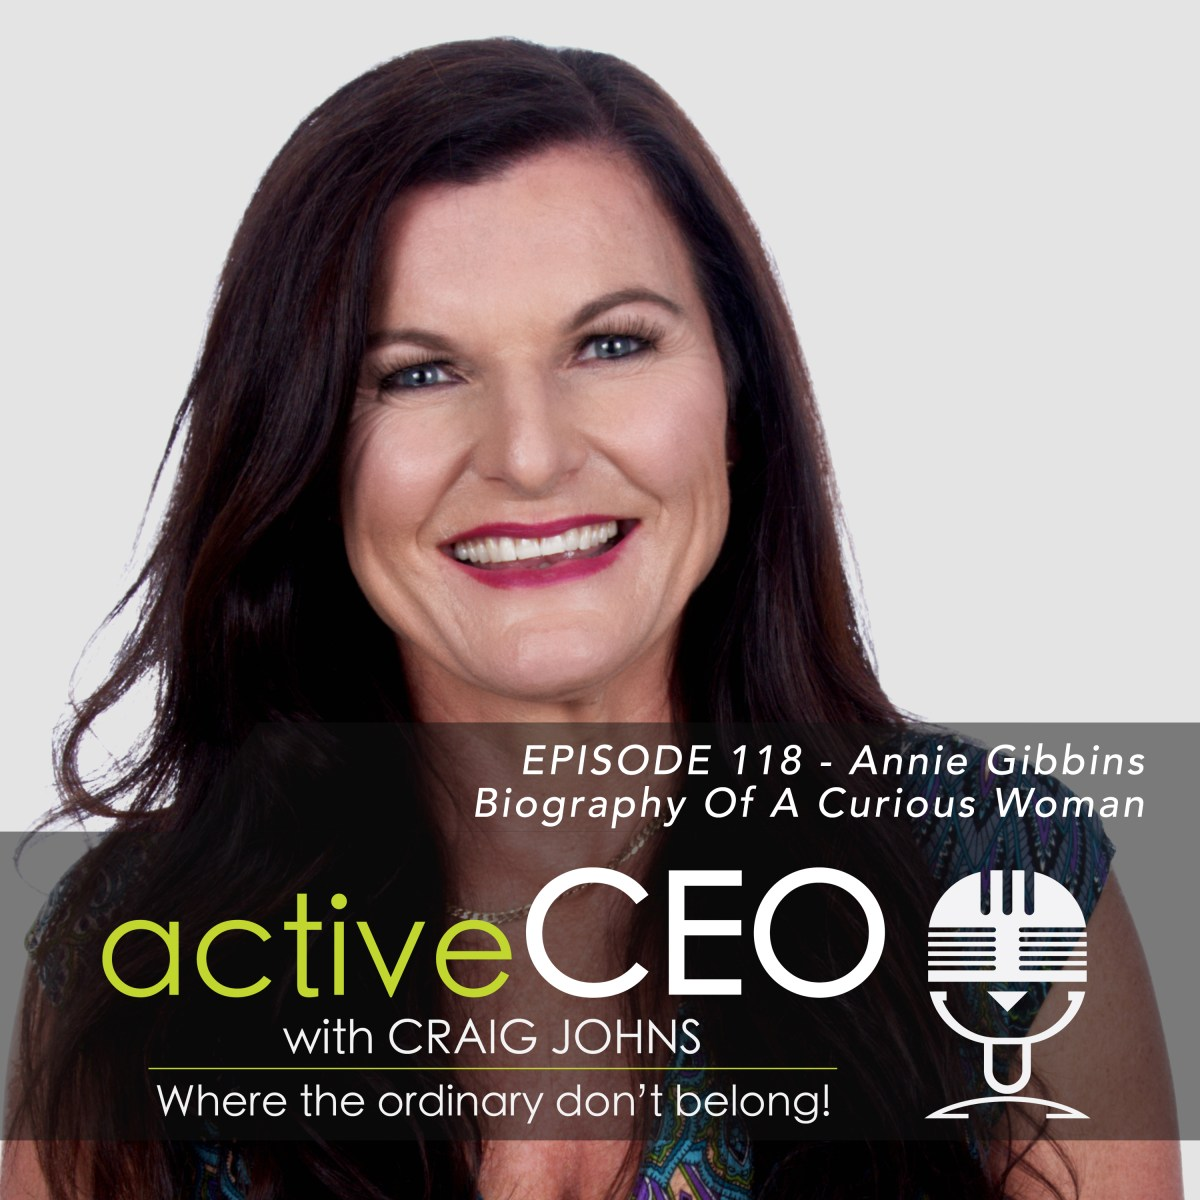 active CEO Podcast 118 Annie Gibbins Biography Of A Curious Woman